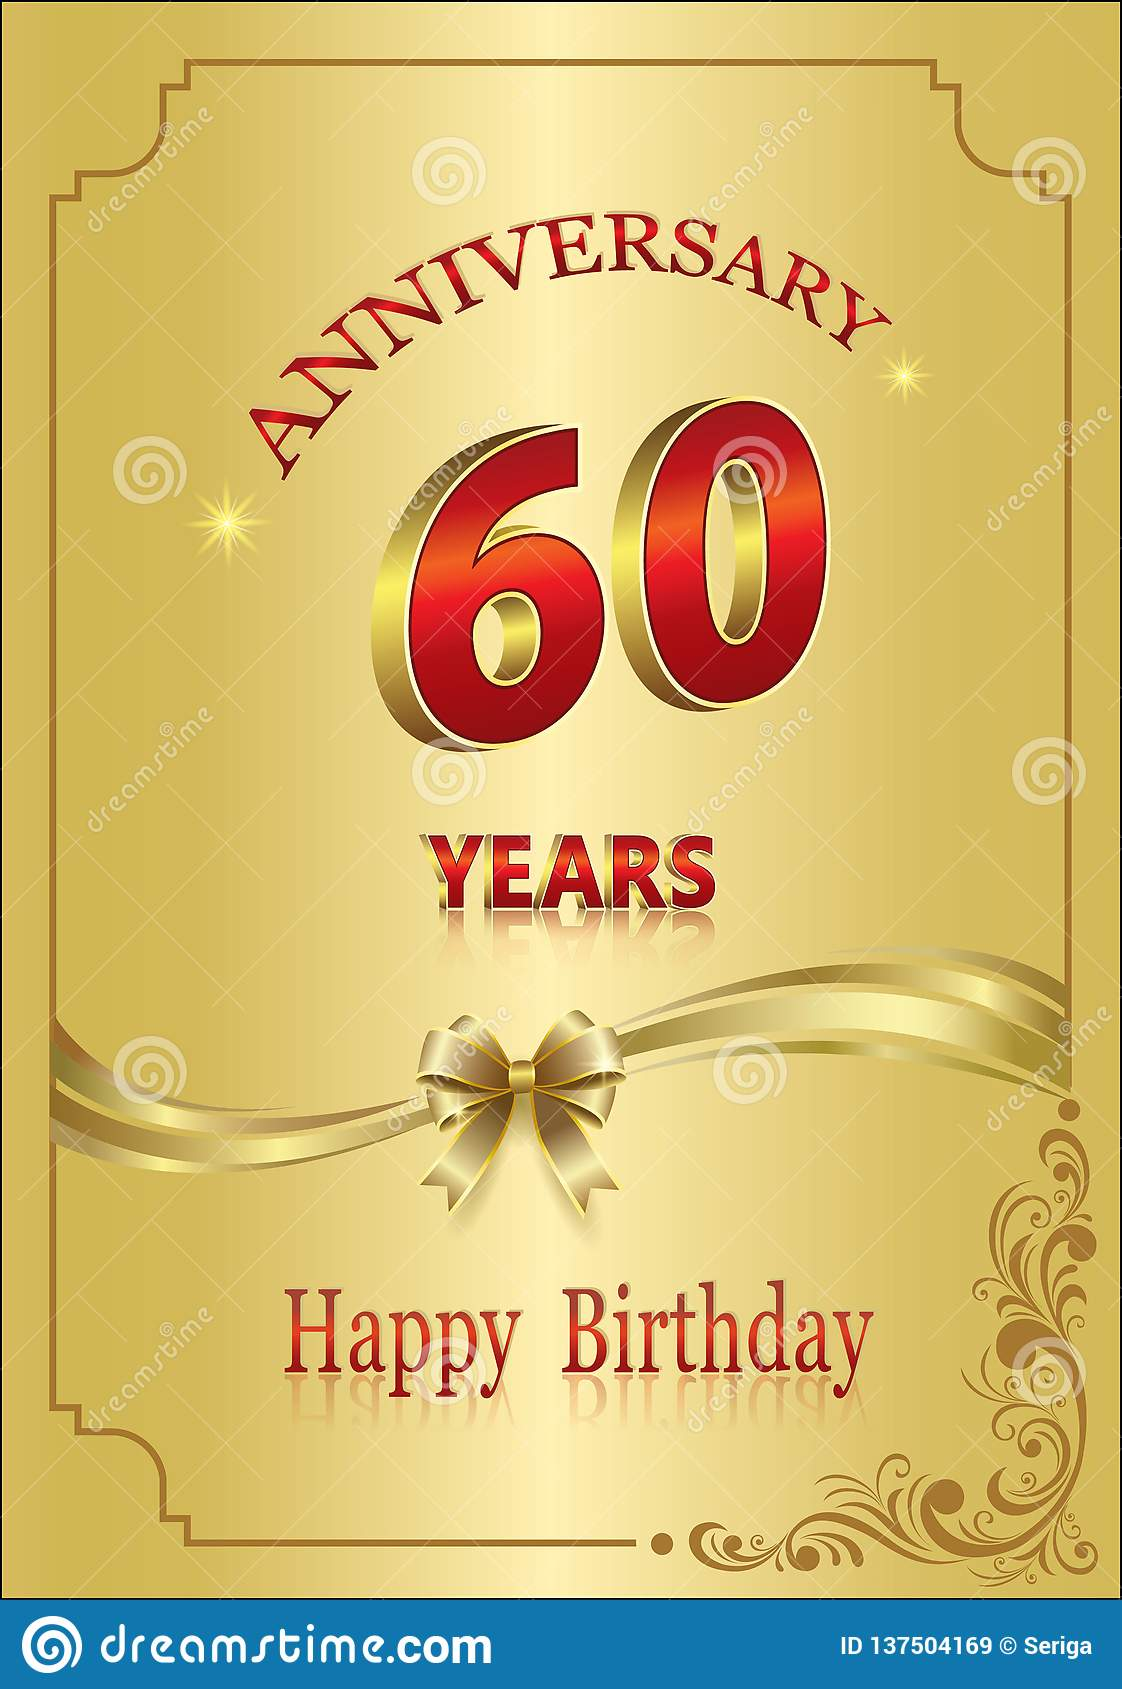 Anniversary 60 Years Happy Birthday Greeting Card Celebrations Background Vector Illustration